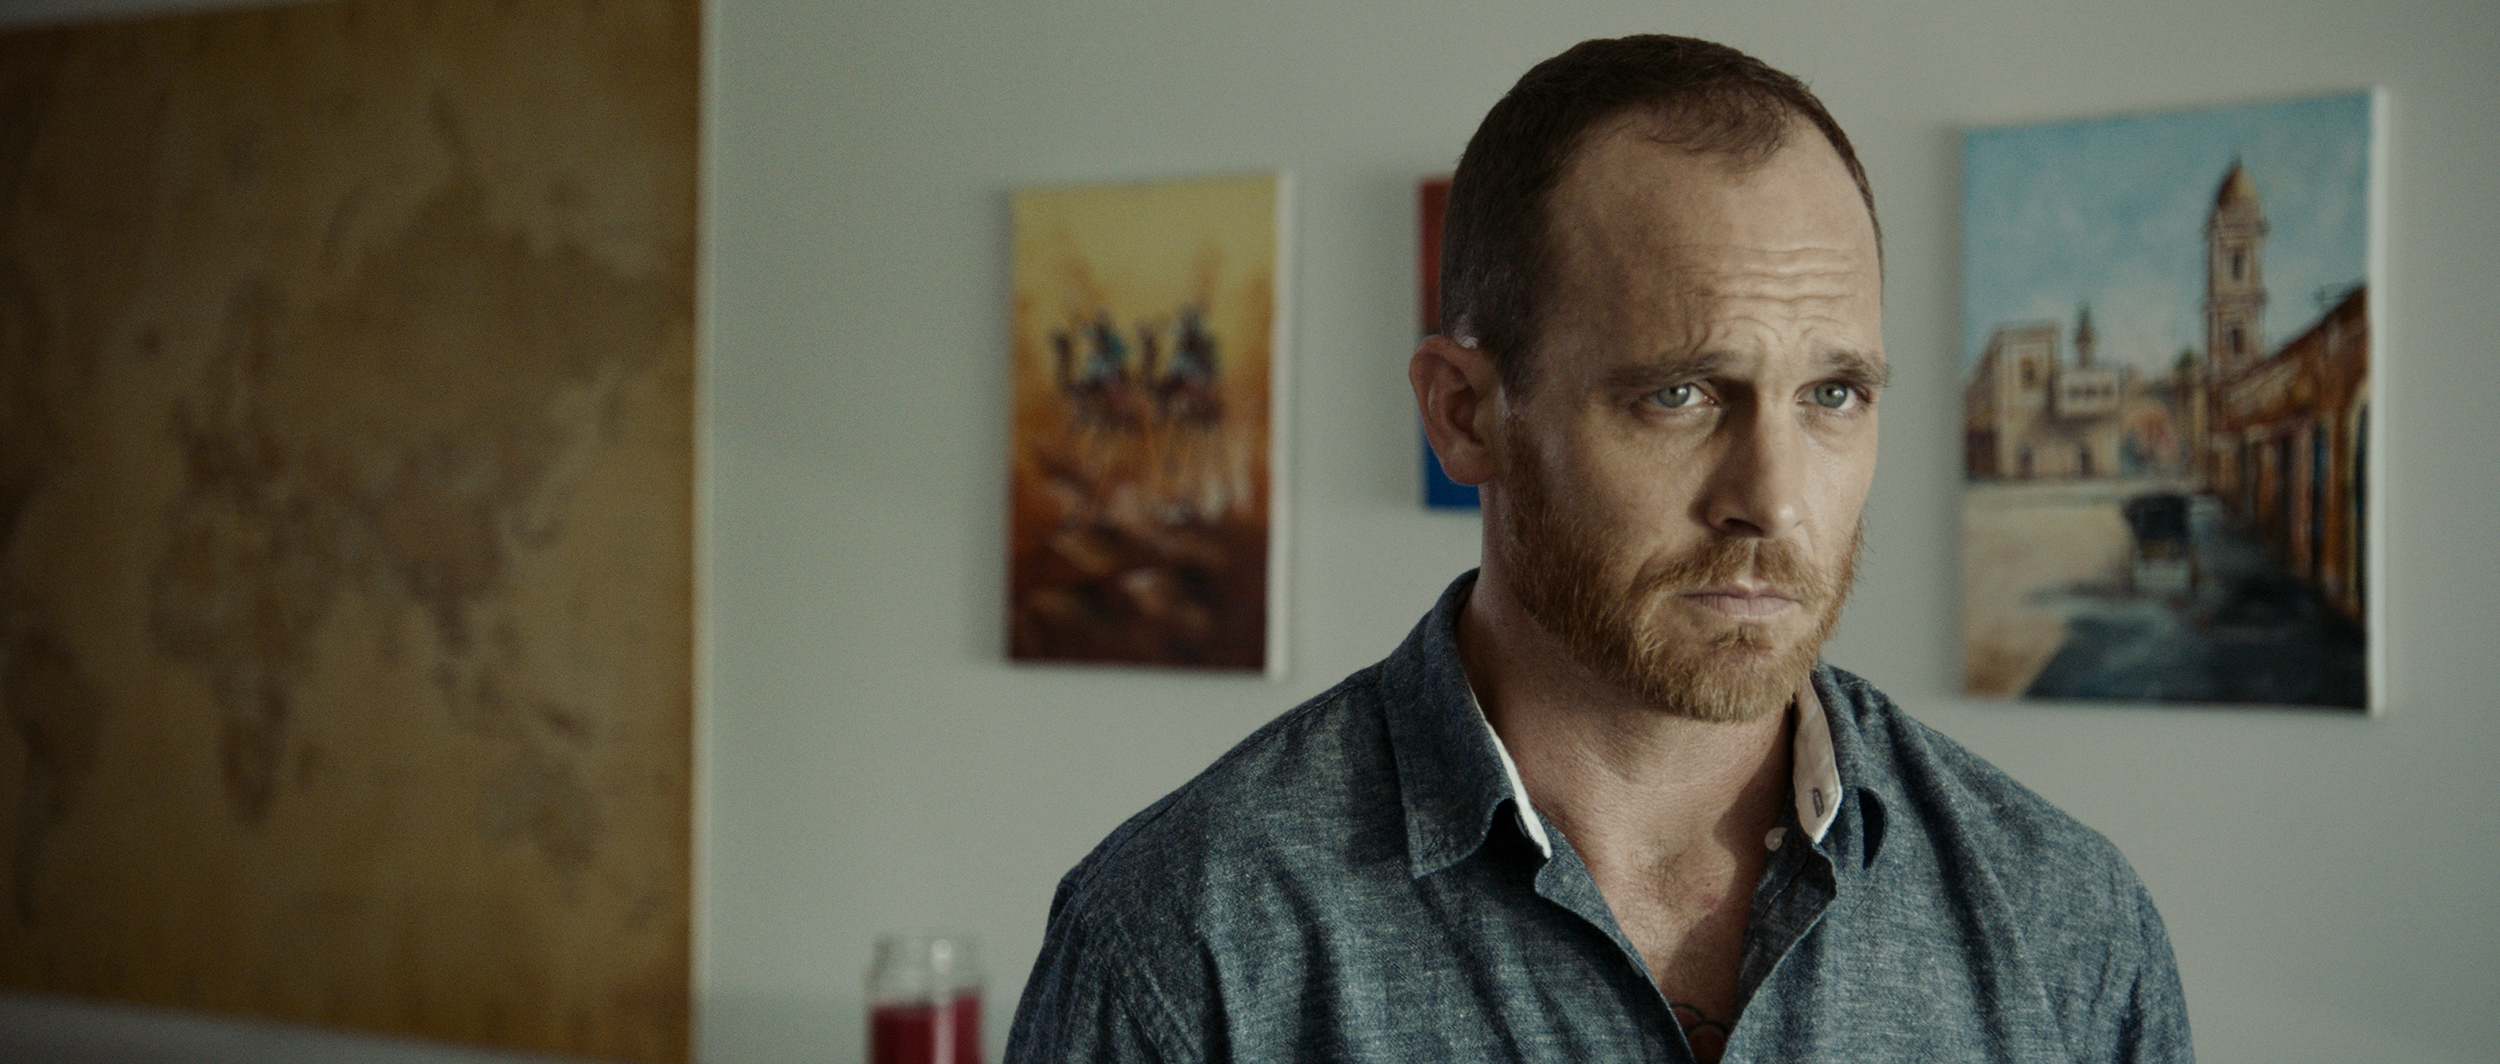 Actor Ethan Embry lost in thought...